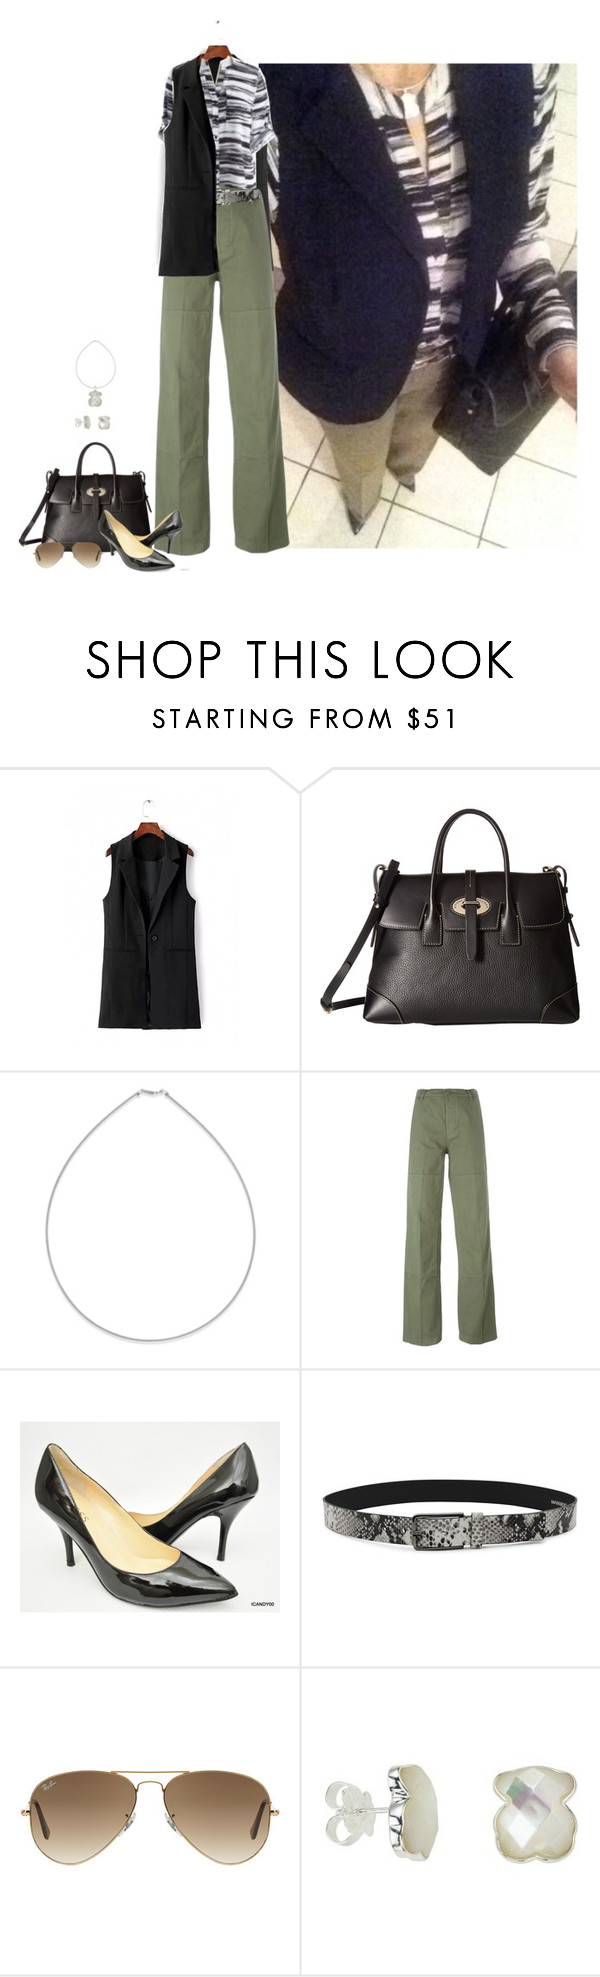 """""""Untitled #2619"""" by elia72 ❤ liked on Polyvore featuring Belk & Co., Tory Burch, GUESS and Ray-Ban"""